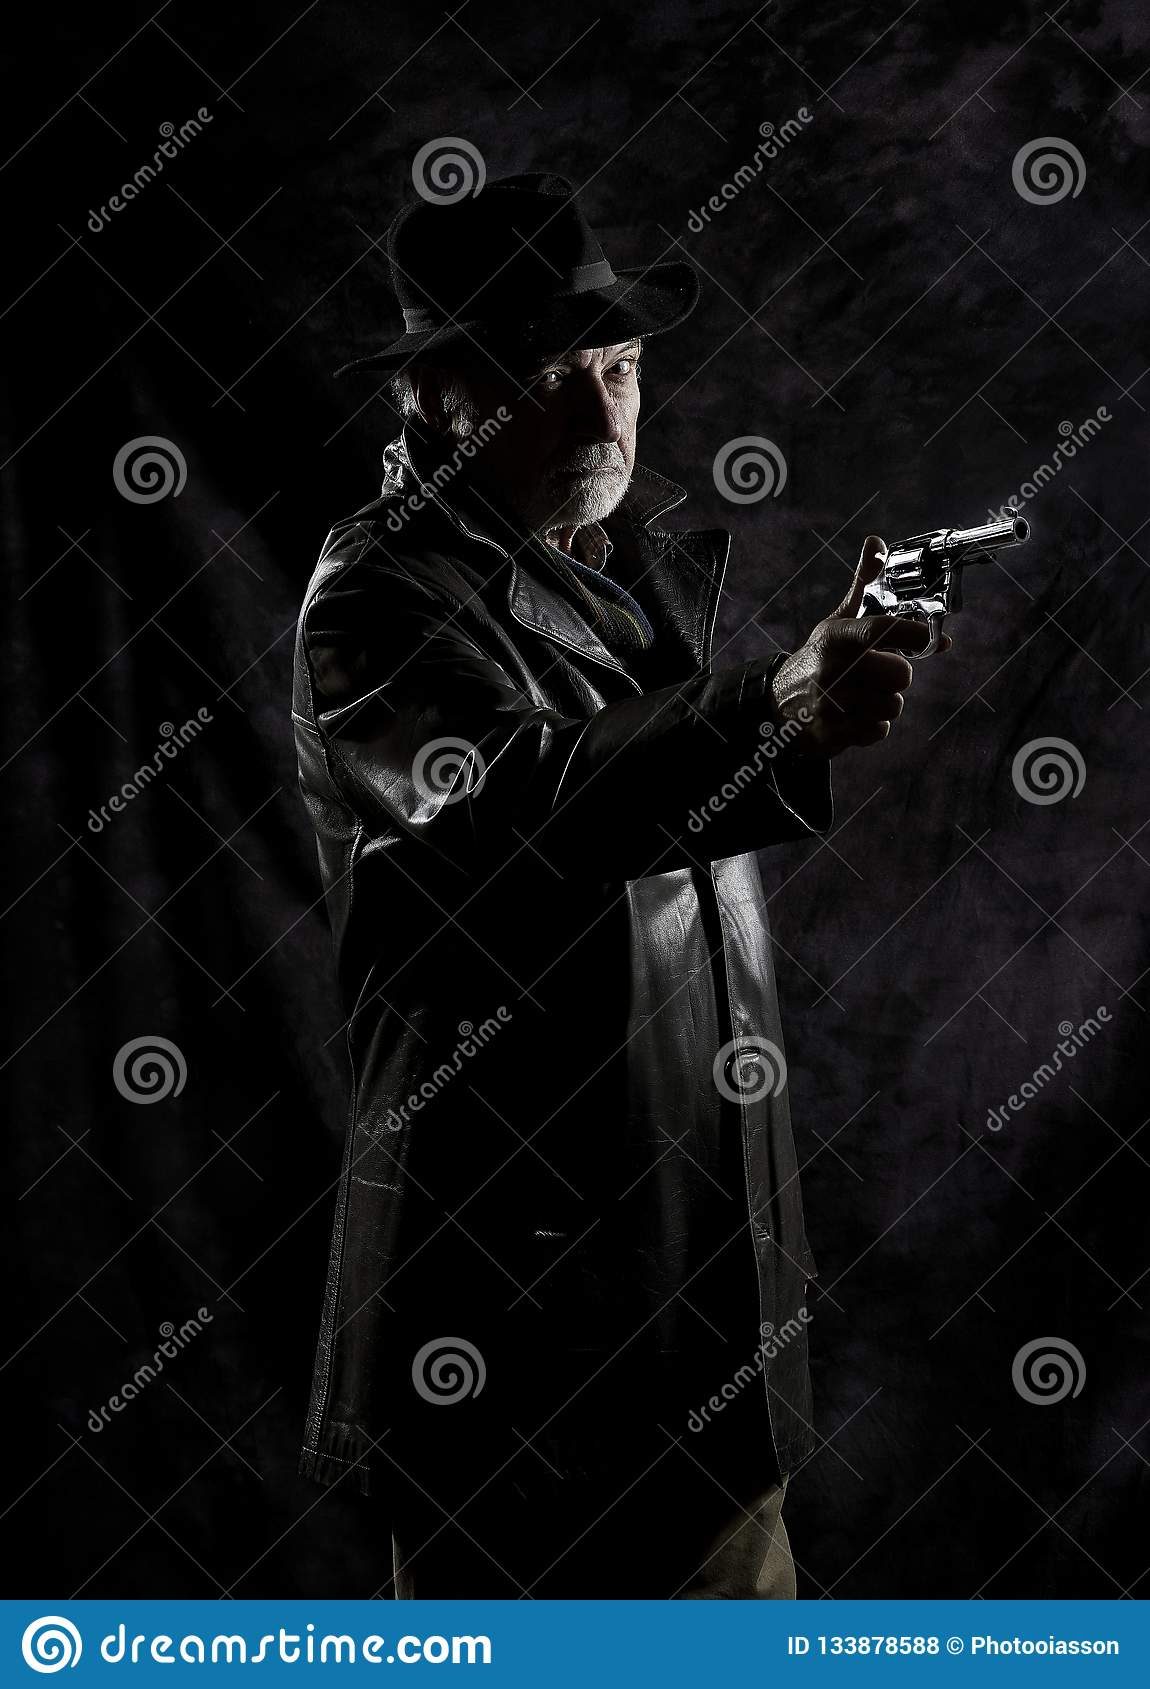 A Private Detective With A Revolver In Front Of A Black